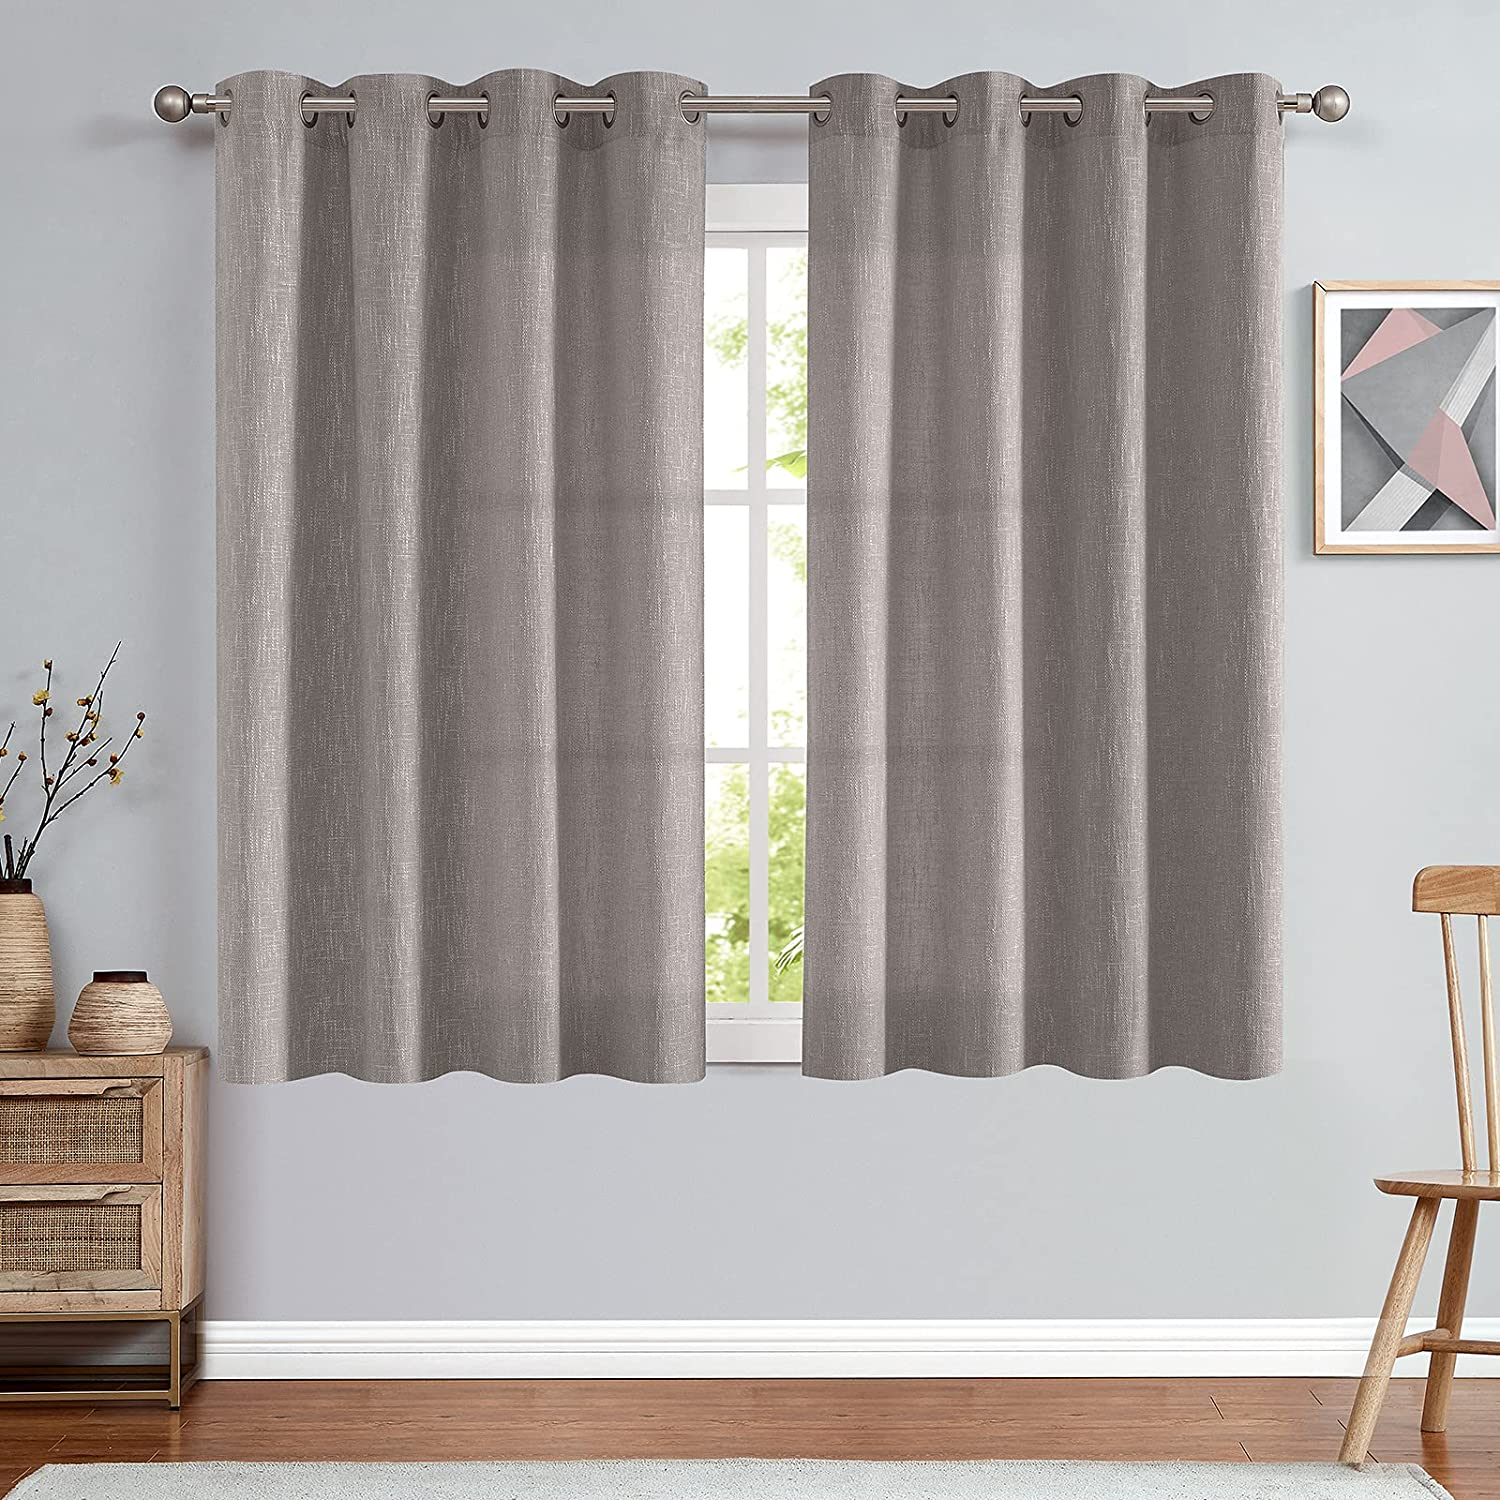 jinchan Linen Look Curtains Grommets Top for Living Room Window Treatment Set for Bedroom Drapes 52